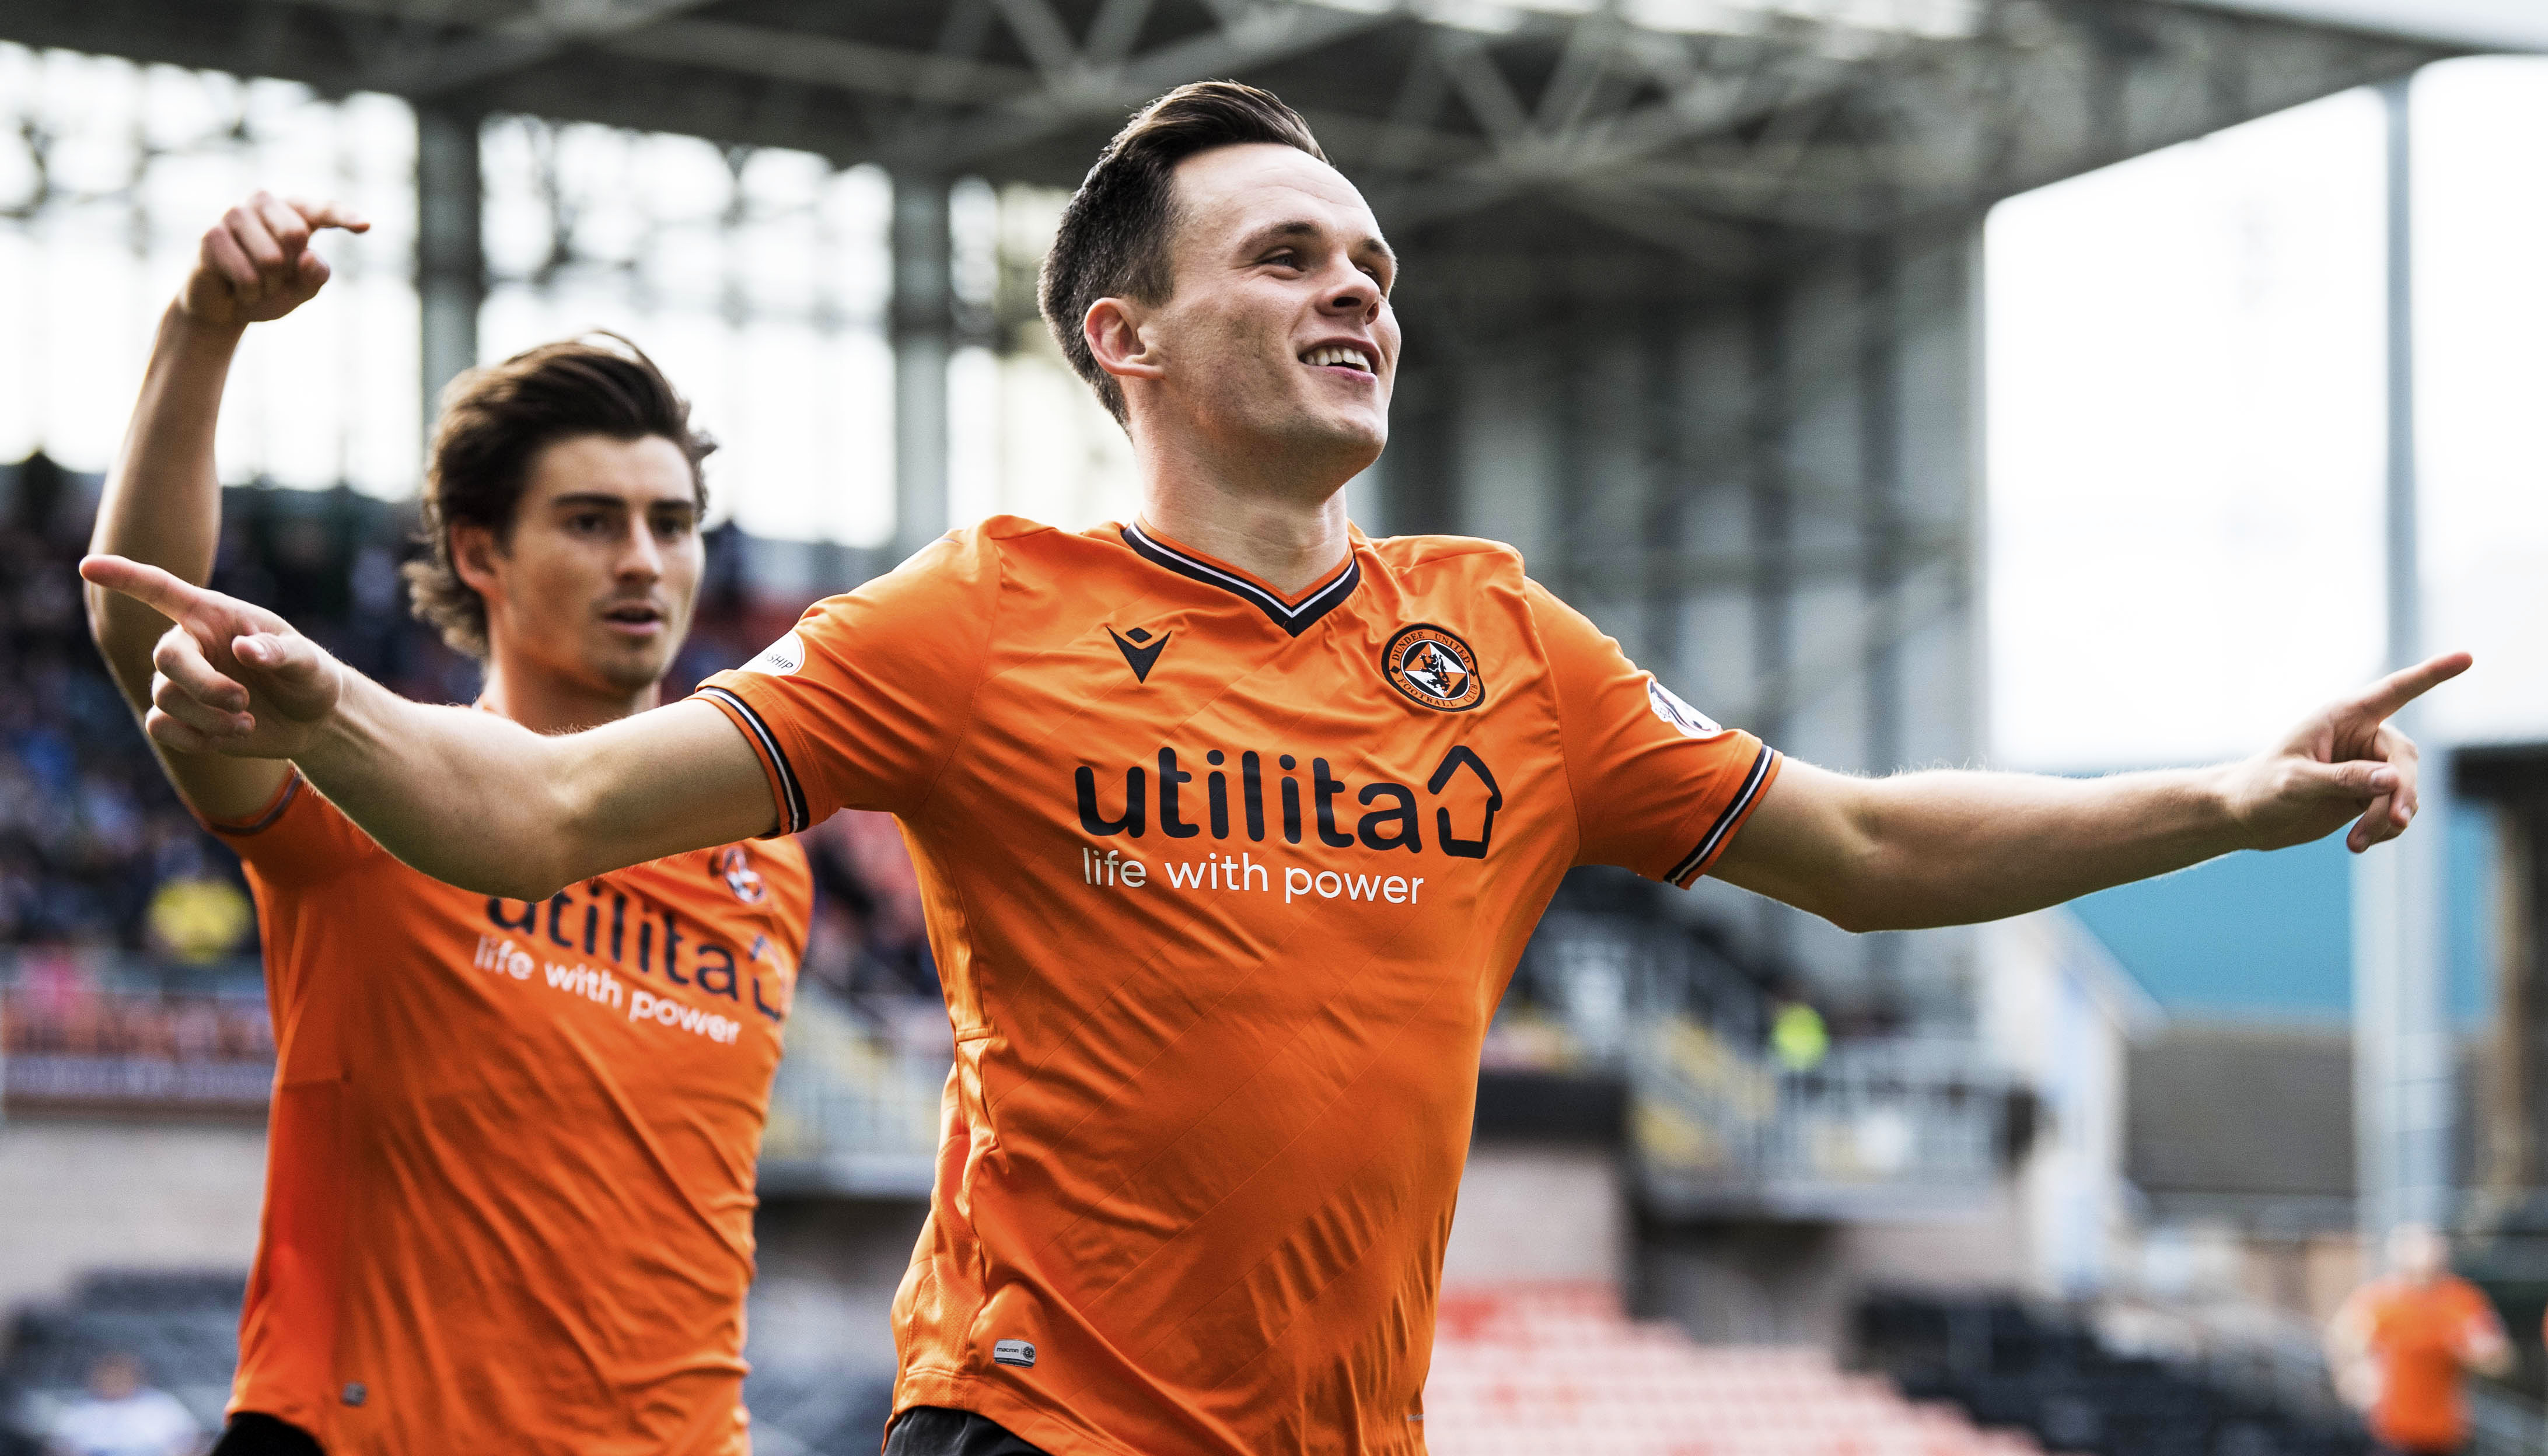 Lawrence Shankland celebrates scoring during the Ladbrokes Championship match between Dundee United and Greenock Morton at Tannadice Stadium, on September 28. (Photo by Ross Parker / SNS Group)